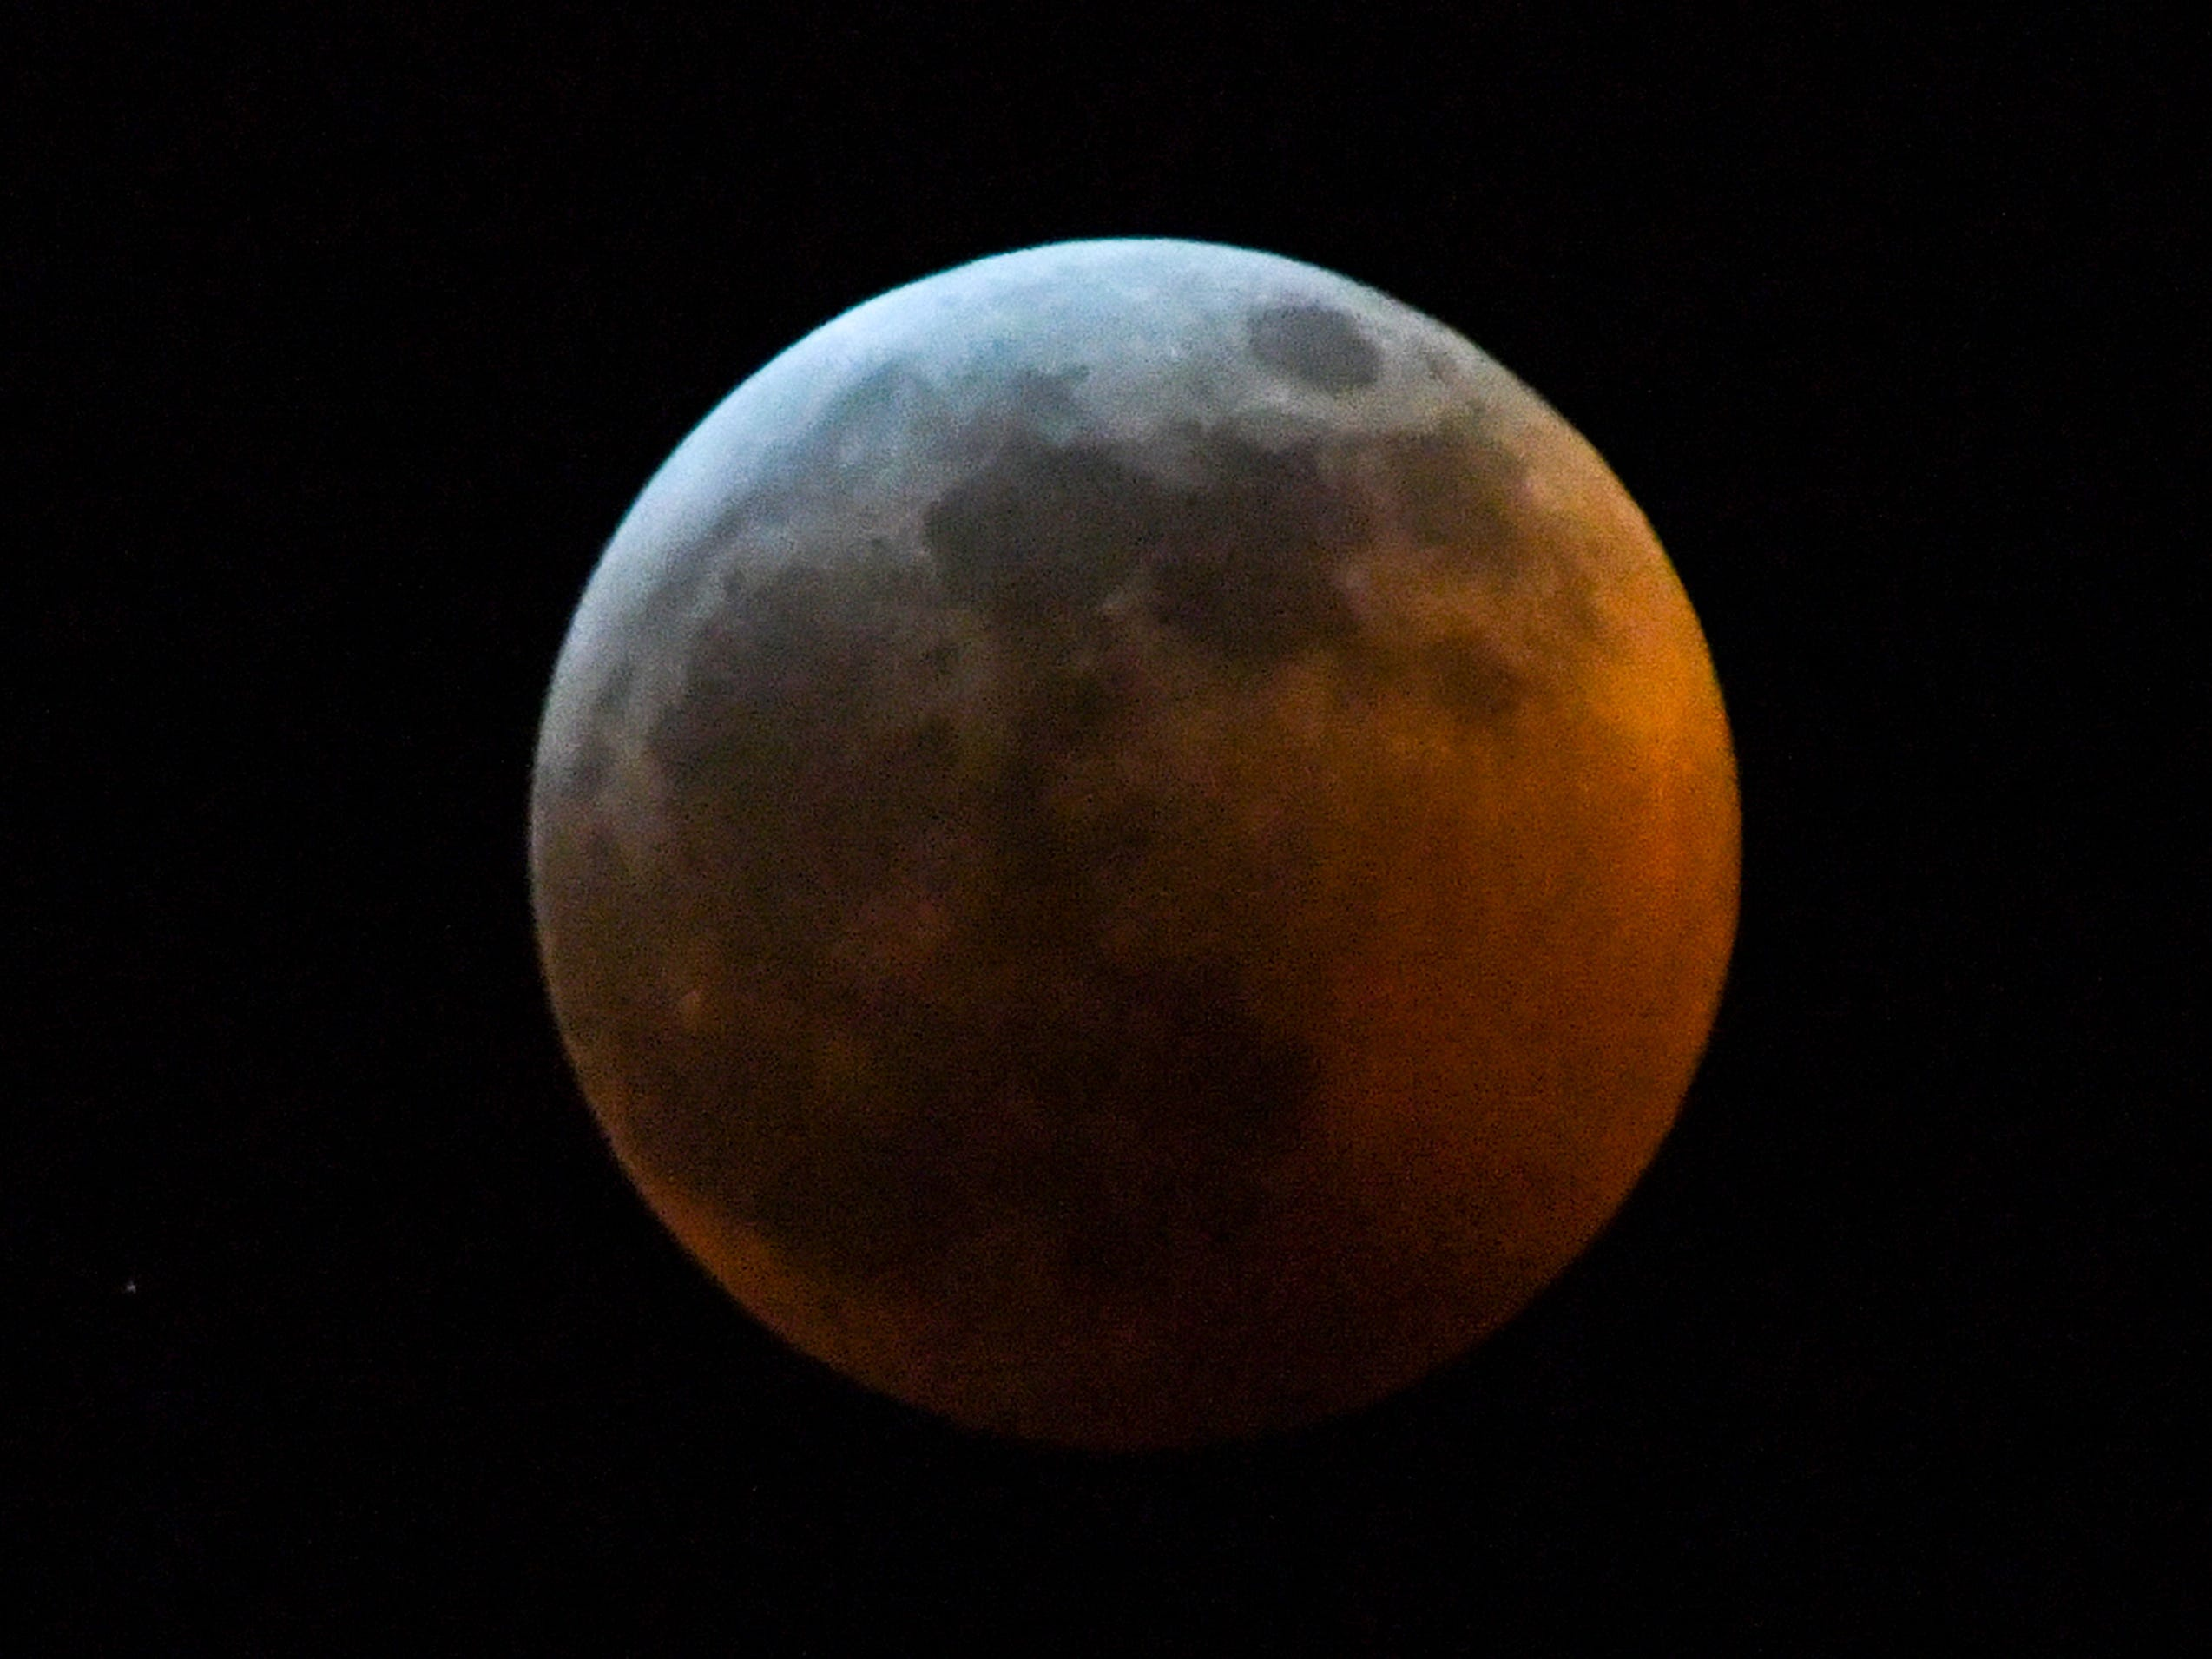 The Super blood wolf moon total lunar eclipse, at 11:51 p.m. (EST) January 20, 2019, shortly after when the moon edged into Earth's shadow and became darkened at 11:41 p.m., seen from Anderson, S.C.